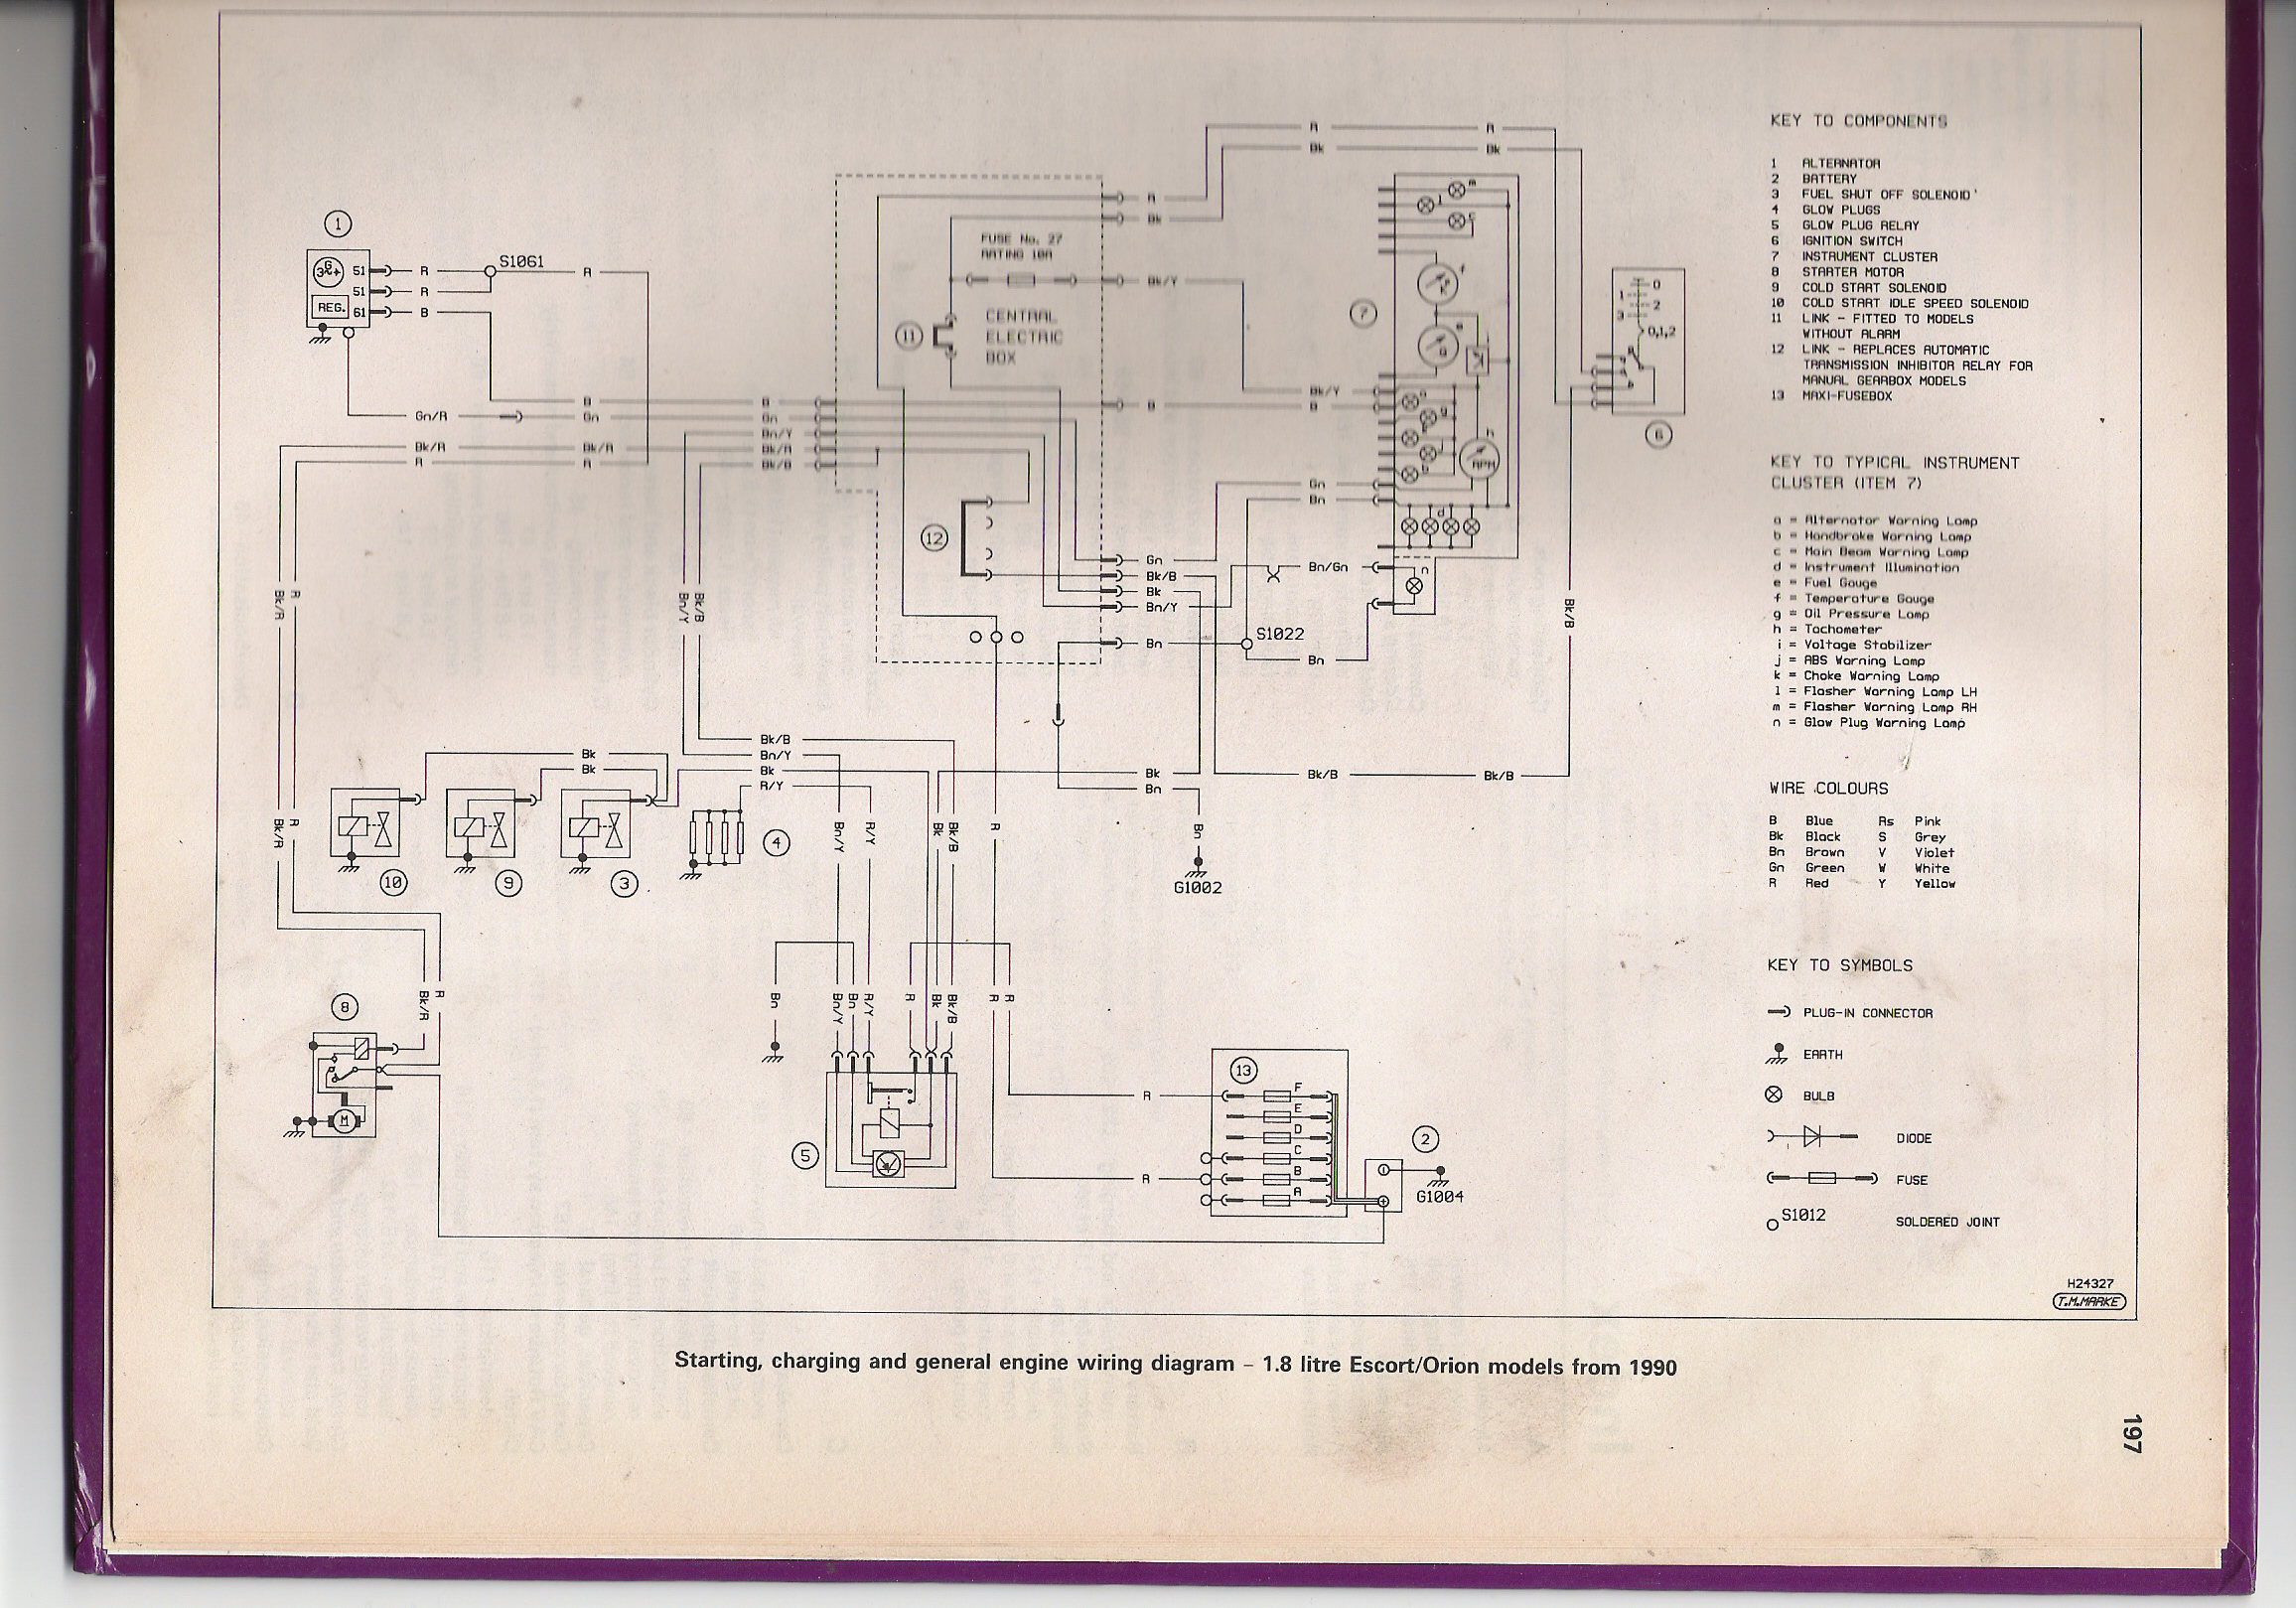 fordwiringdl mk4 wiring diagram wiring diagram for mk4 jetta power seats escort mk1 wiring diagram at webbmarketing.co